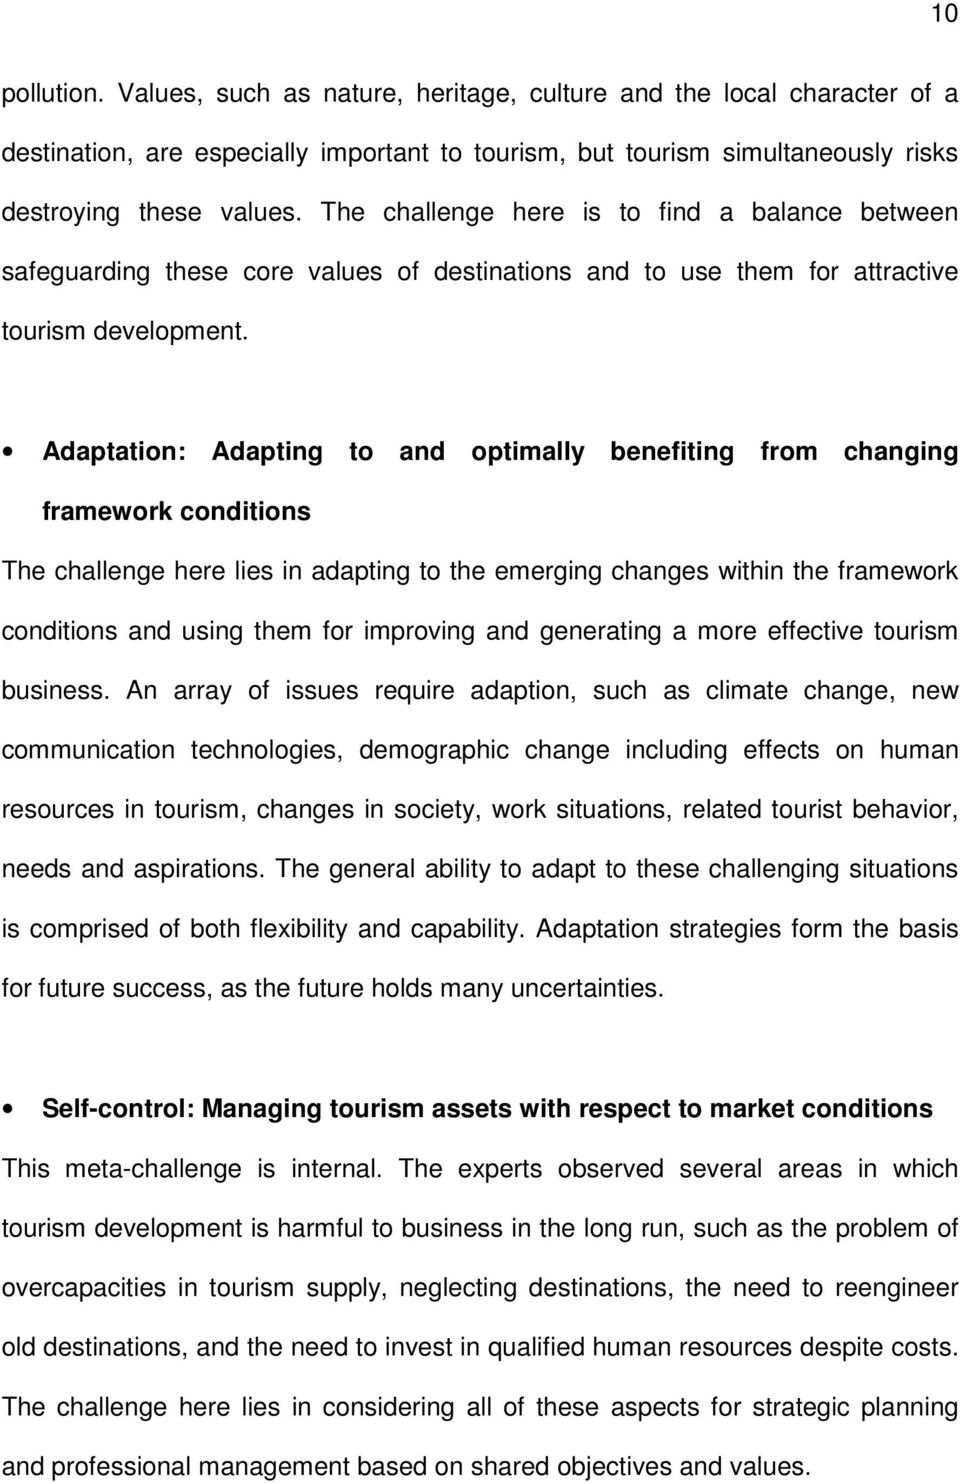 Adaptation: Adapting to and optimally benefiting from changing framework conditions The challenge here lies in adapting to the emerging changes within the framework conditions and using them for